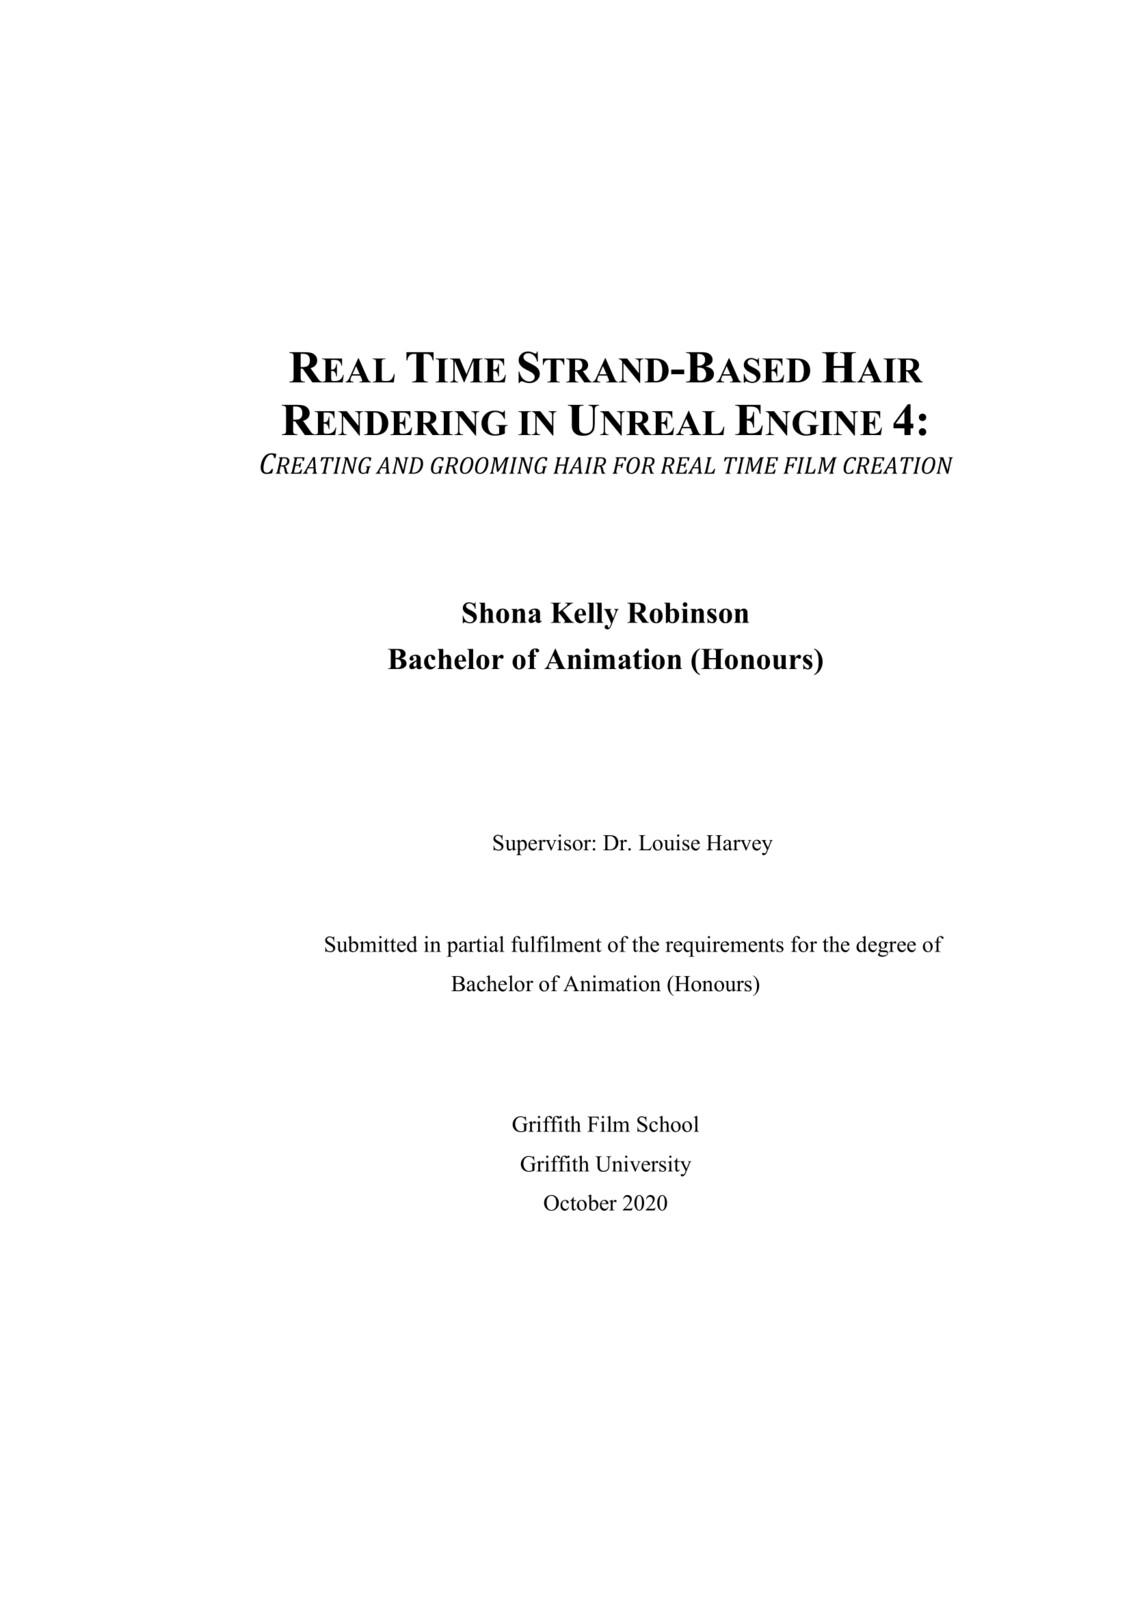 Real Time Strand-Based Hair Rendering in UE4: Creating and Grooming Hair for Real Time Film Creation